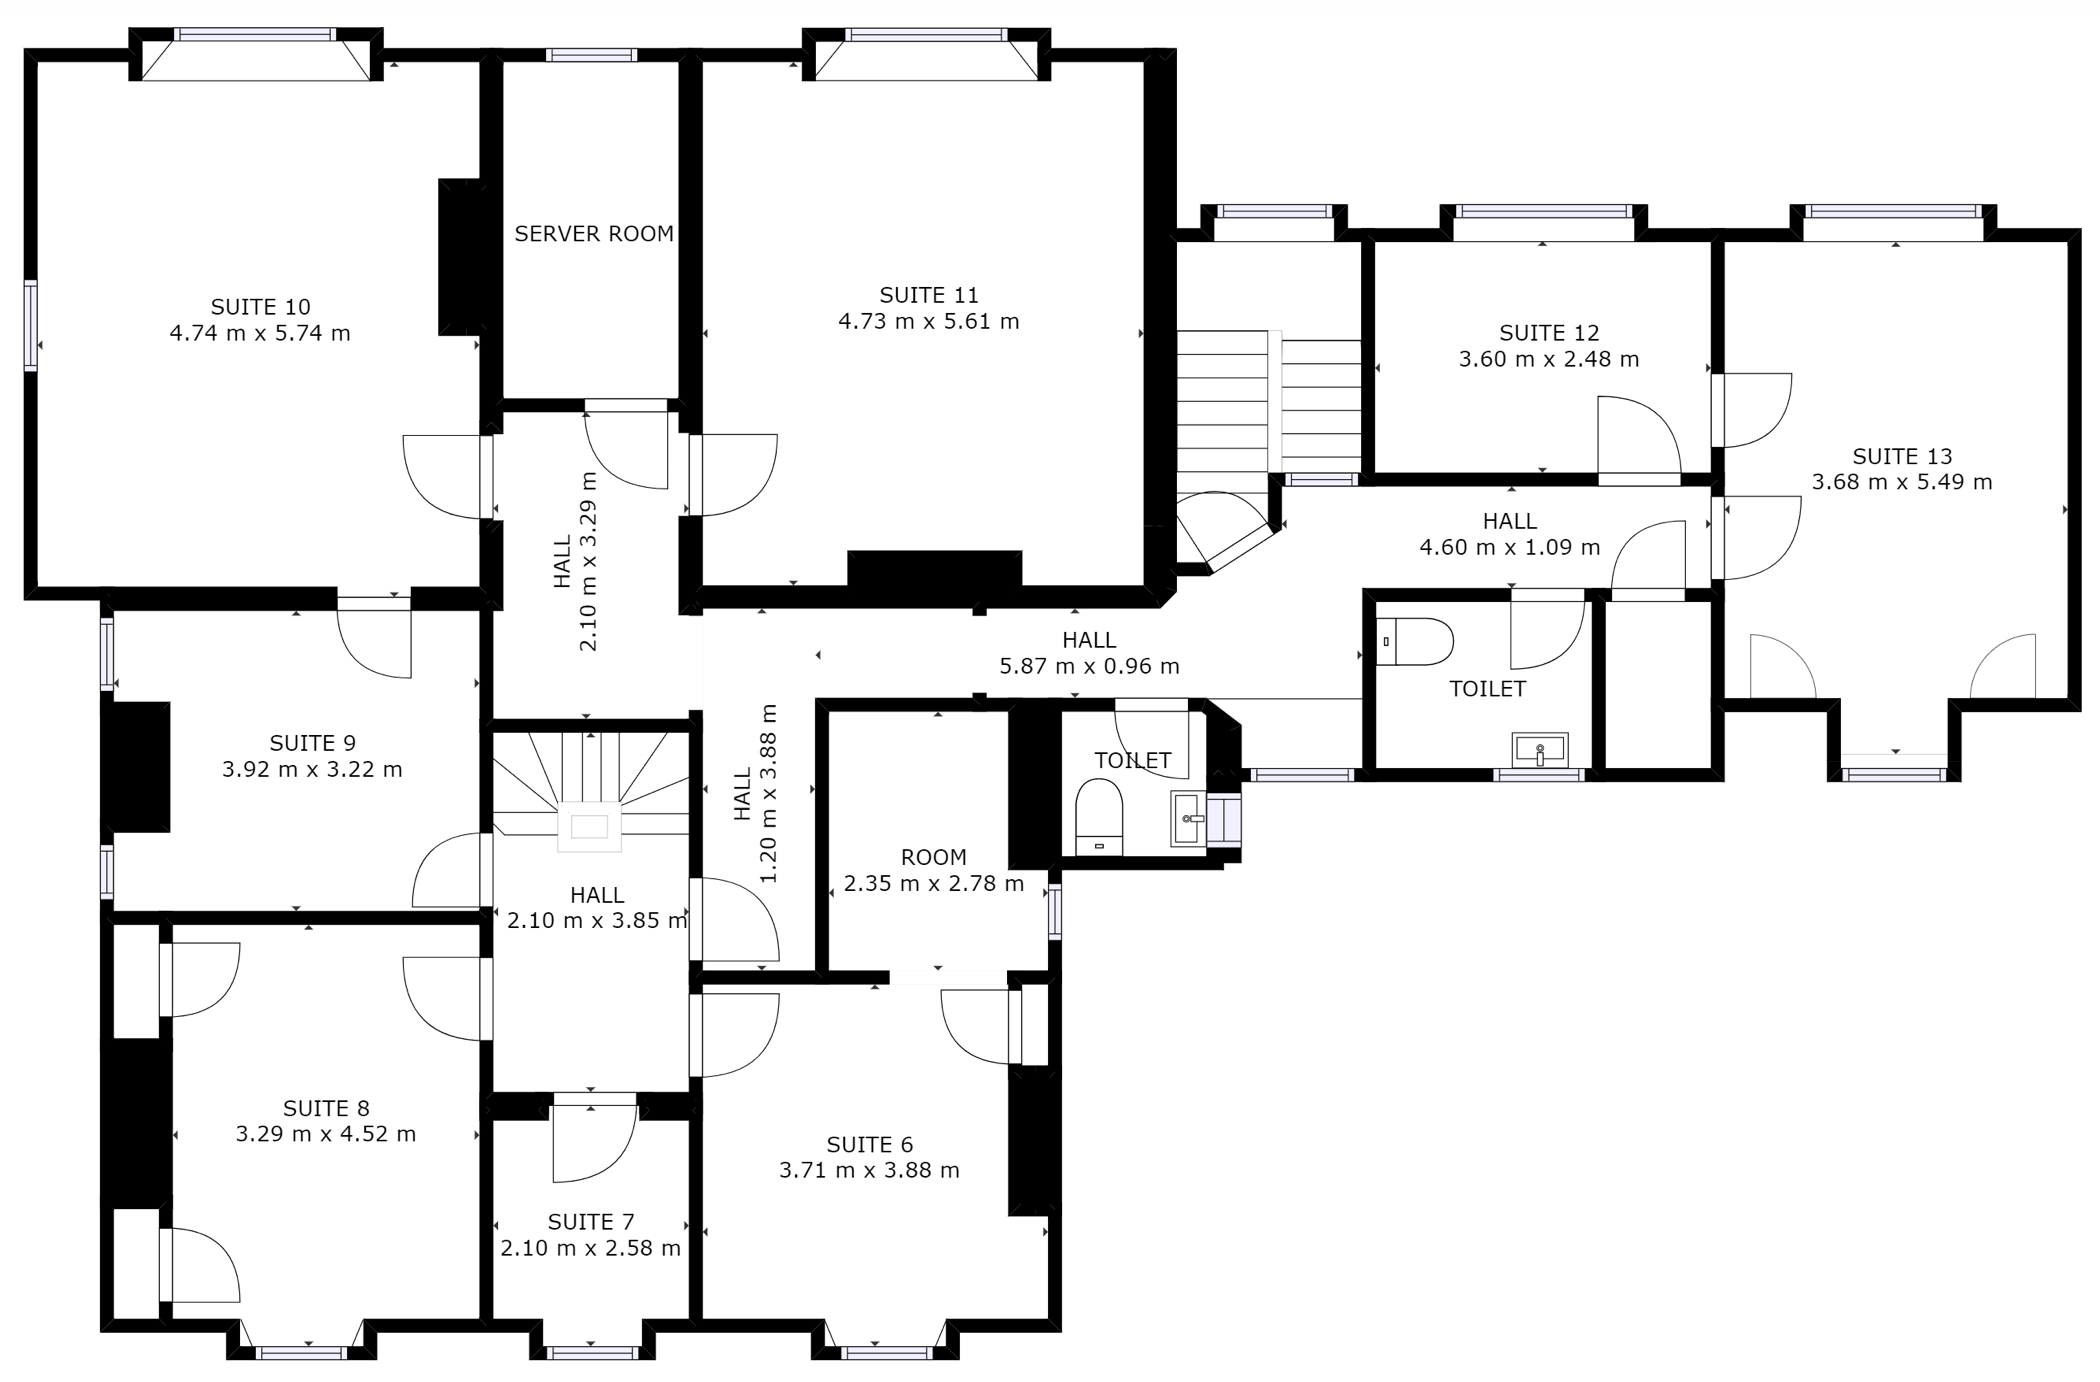 First floor plan of serviced office space at Harpenden business centre, Rivers Lodge